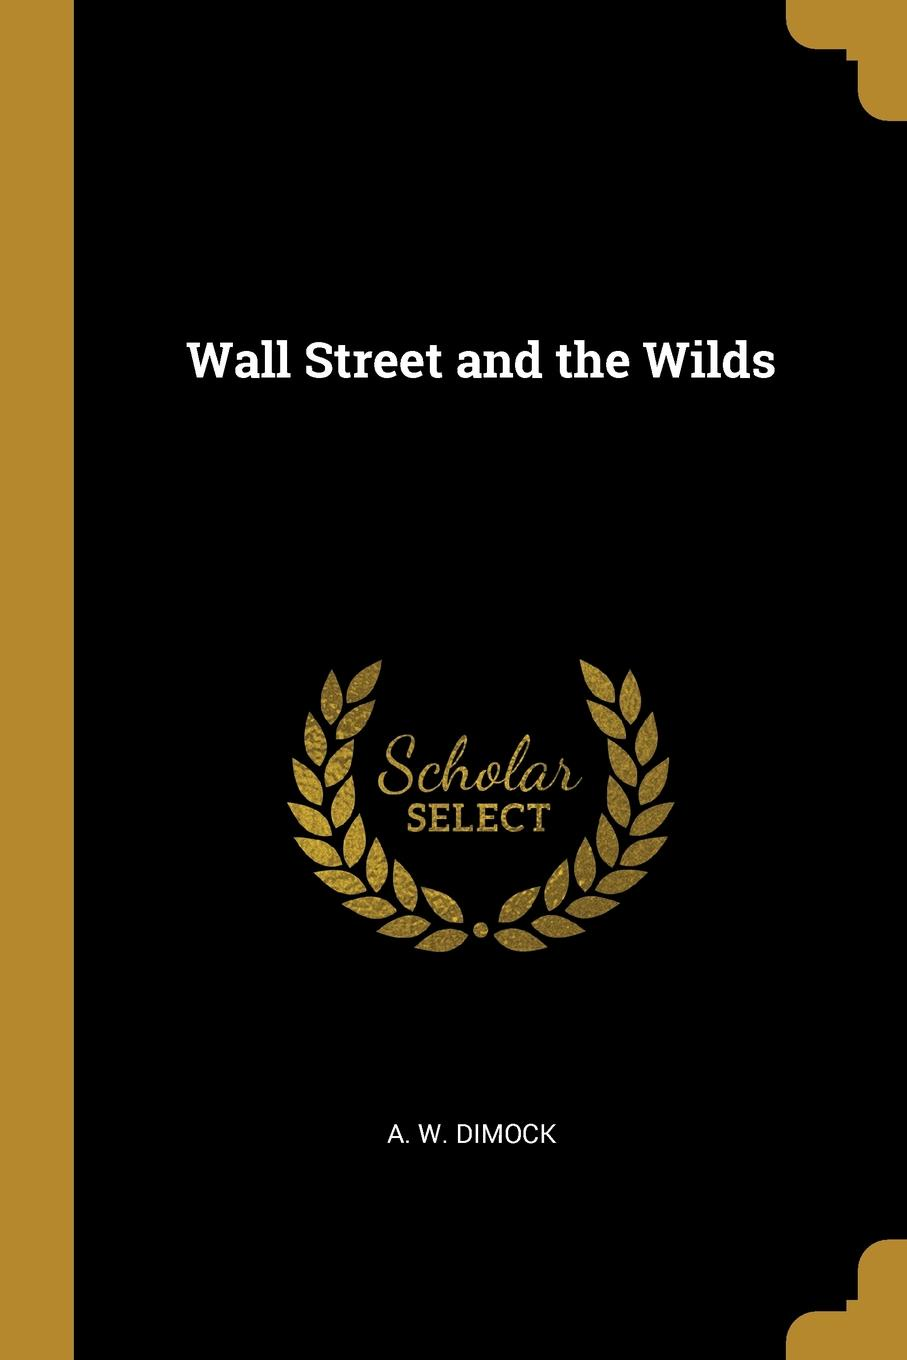 A. W. Dimock. Wall Street and the Wilds